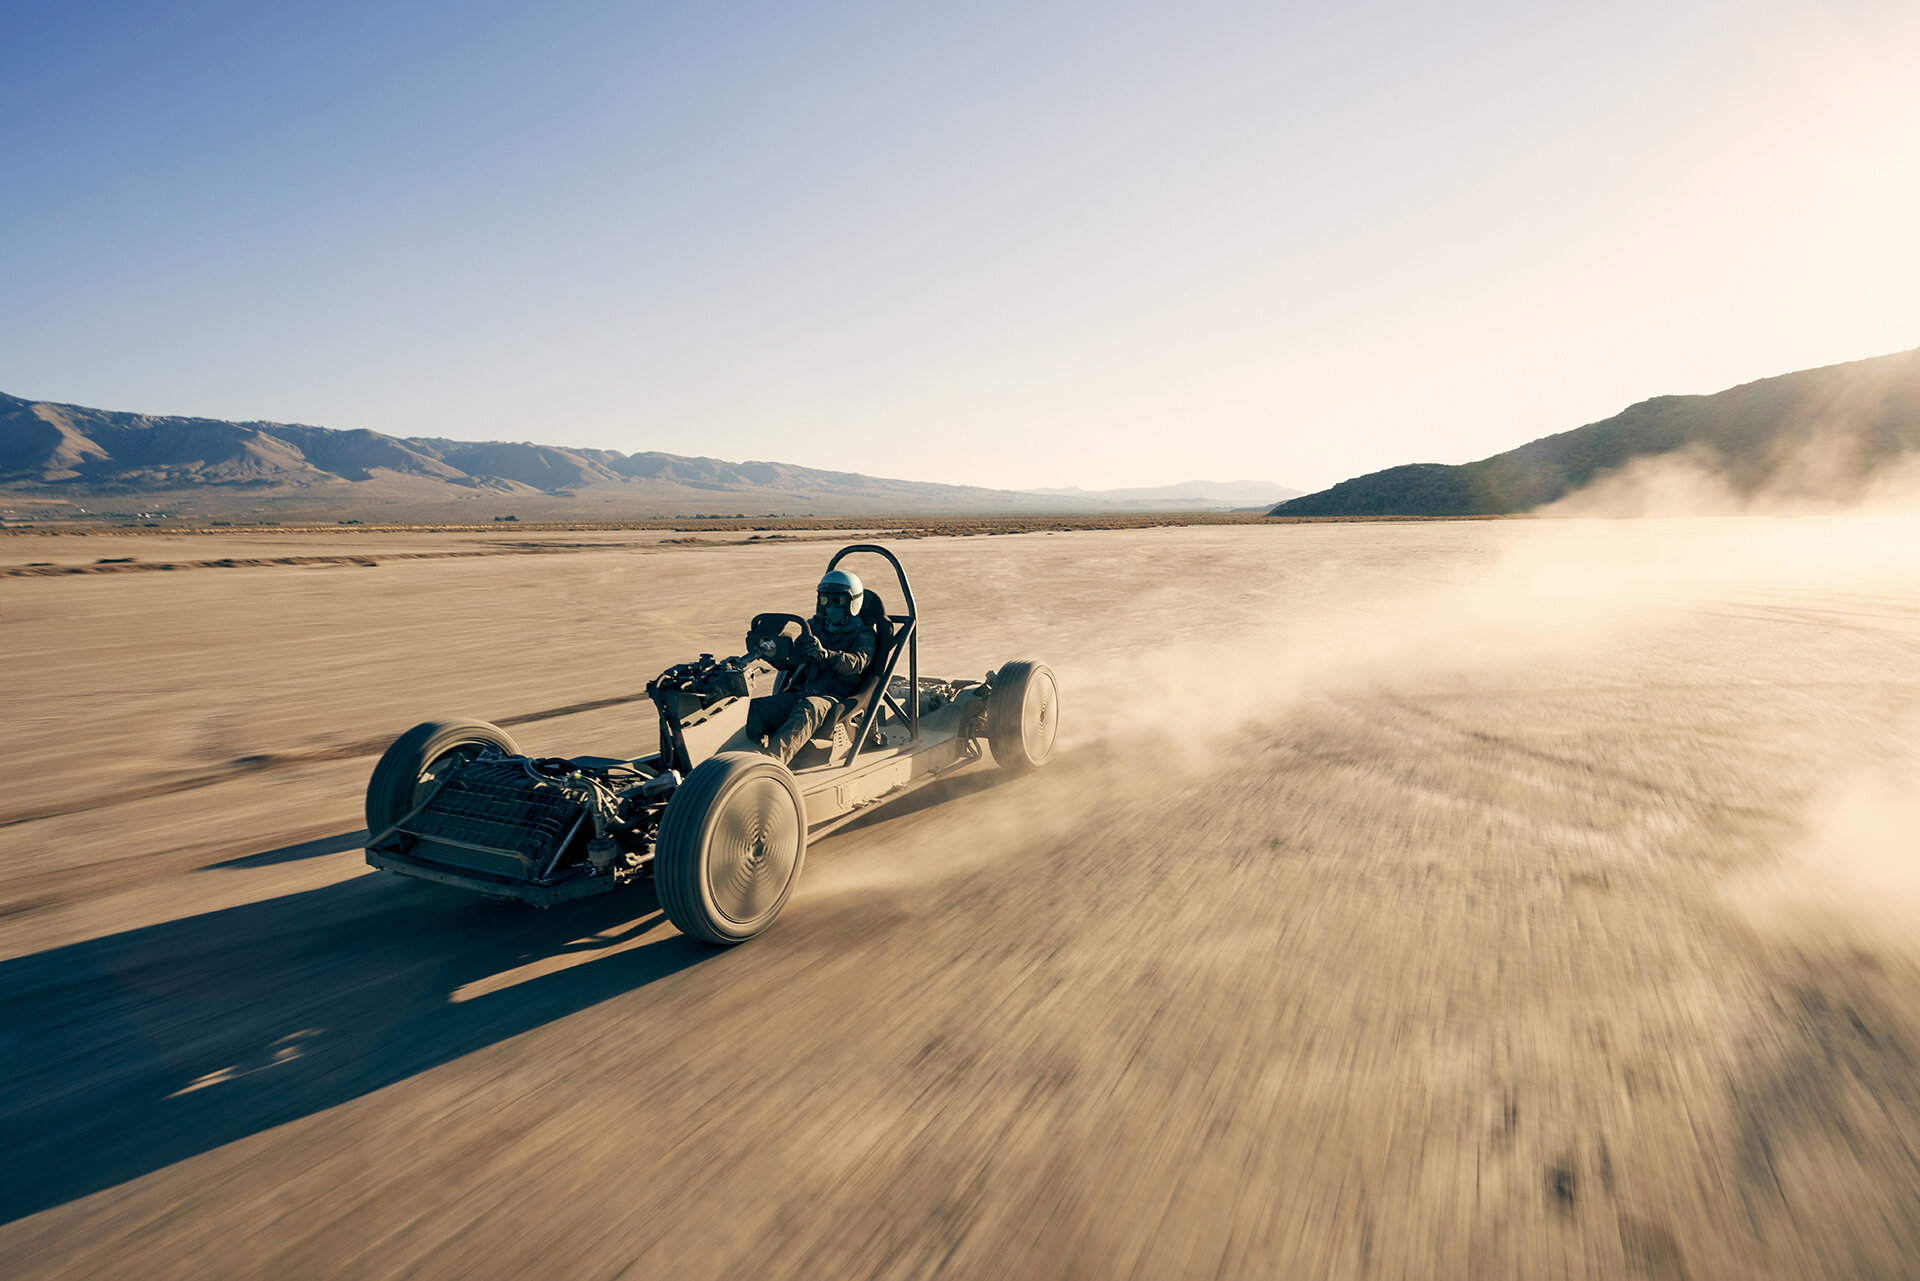 The Canoo skatekart does its thing in the California desert